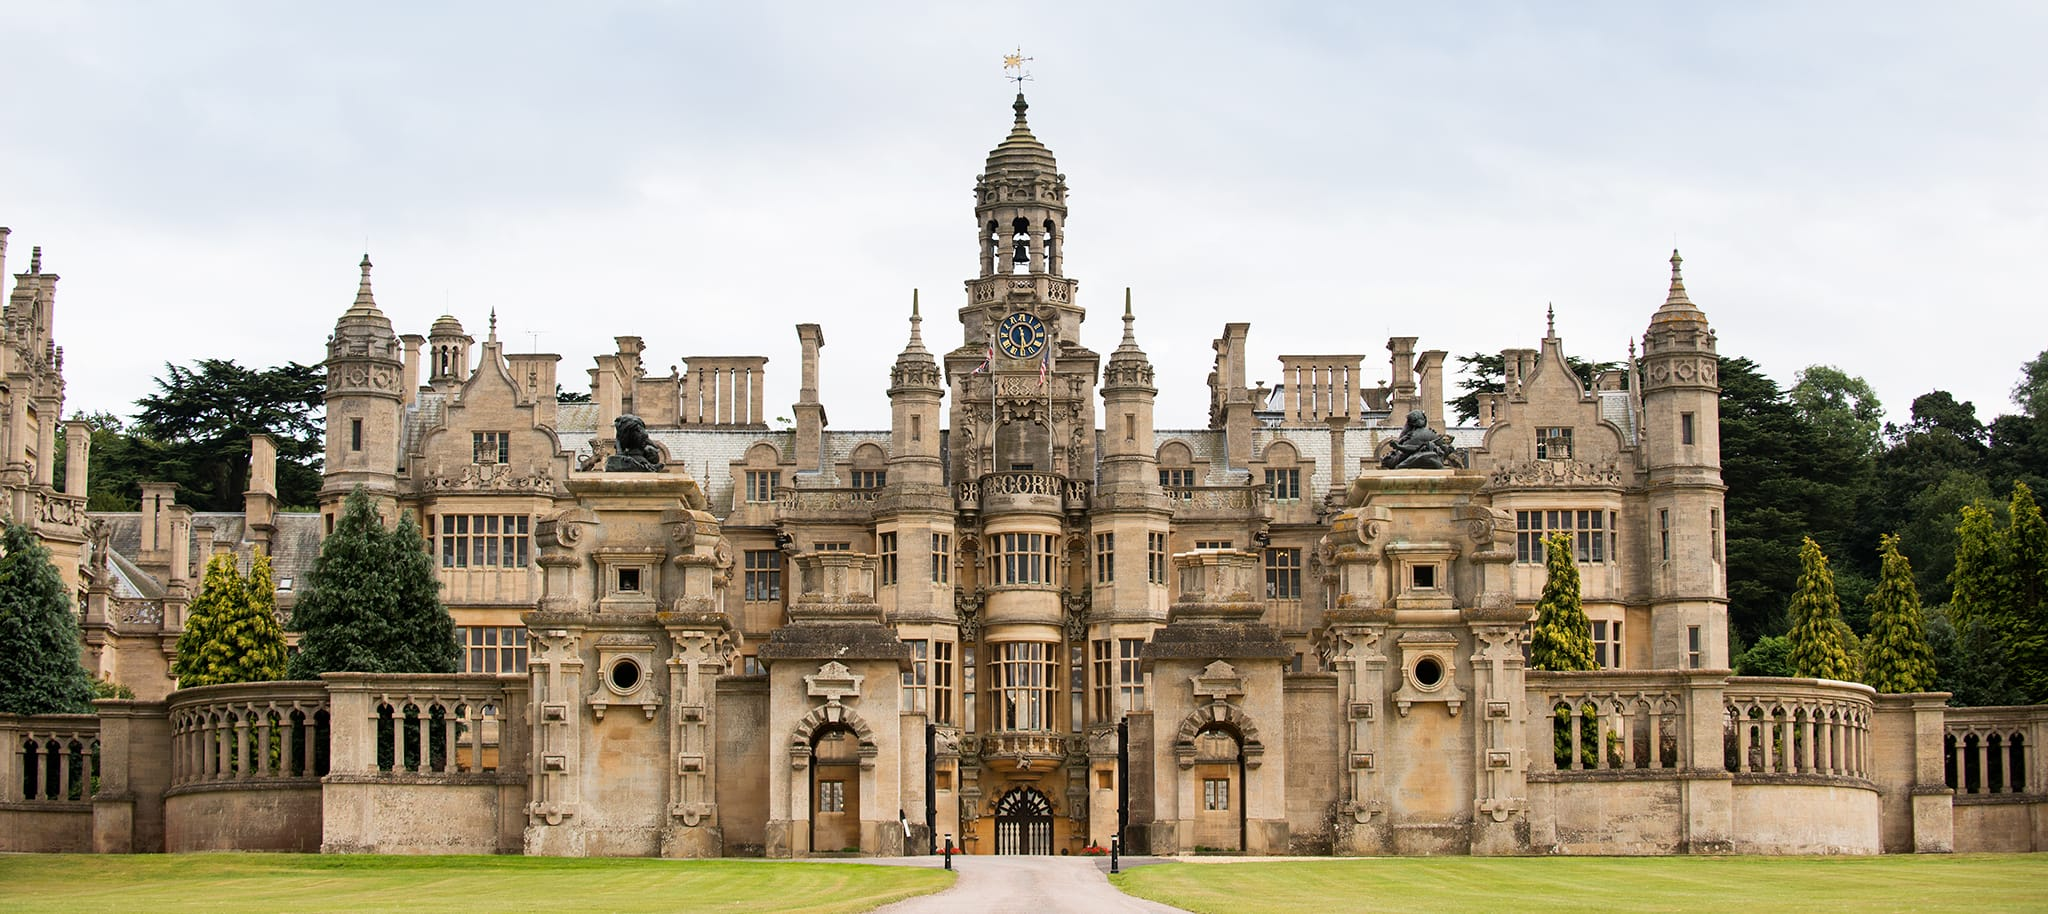 The front of Harlaxton Manor